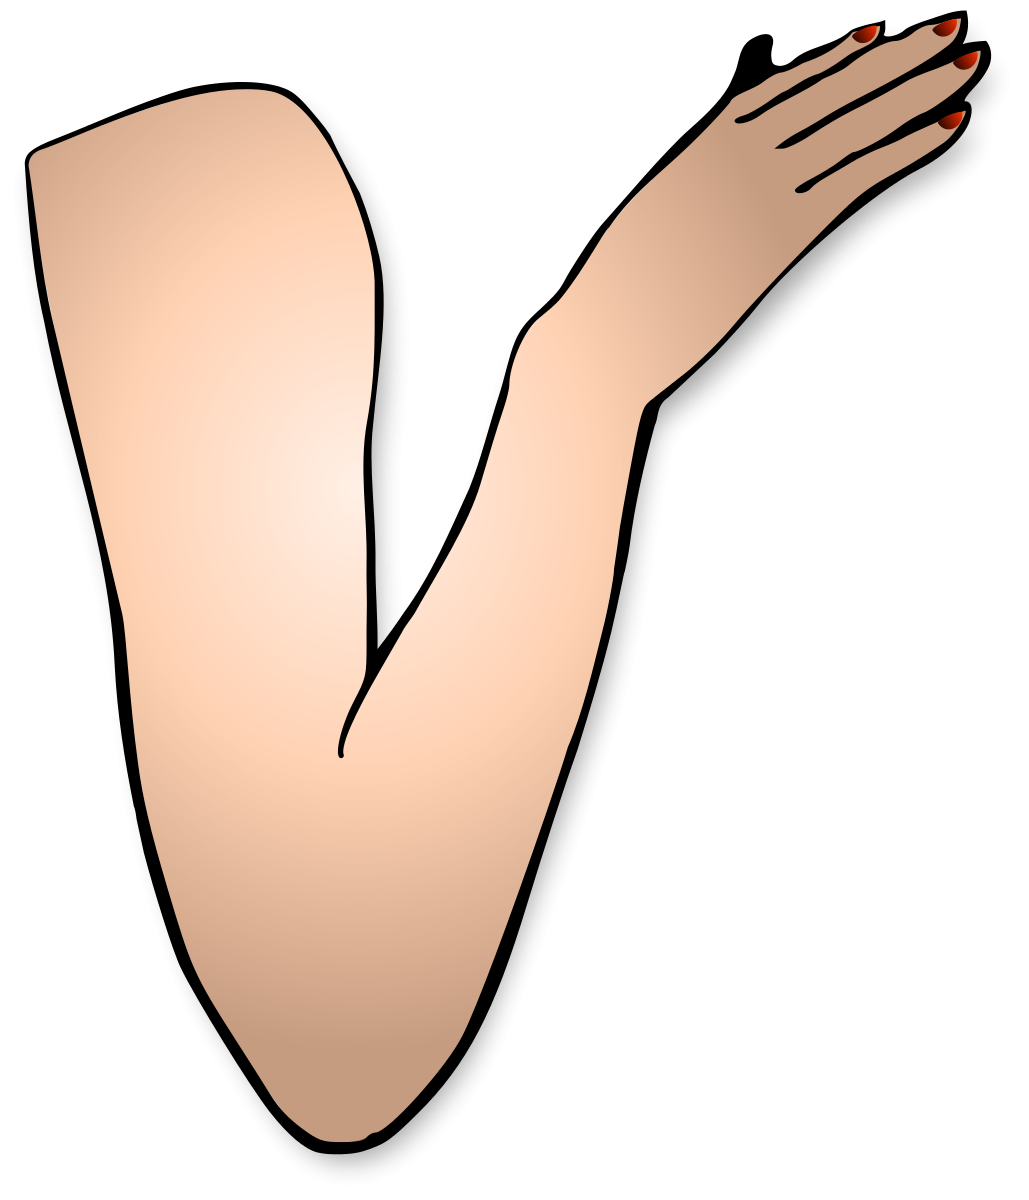 Right Arm Clipart - Clipart Suggest